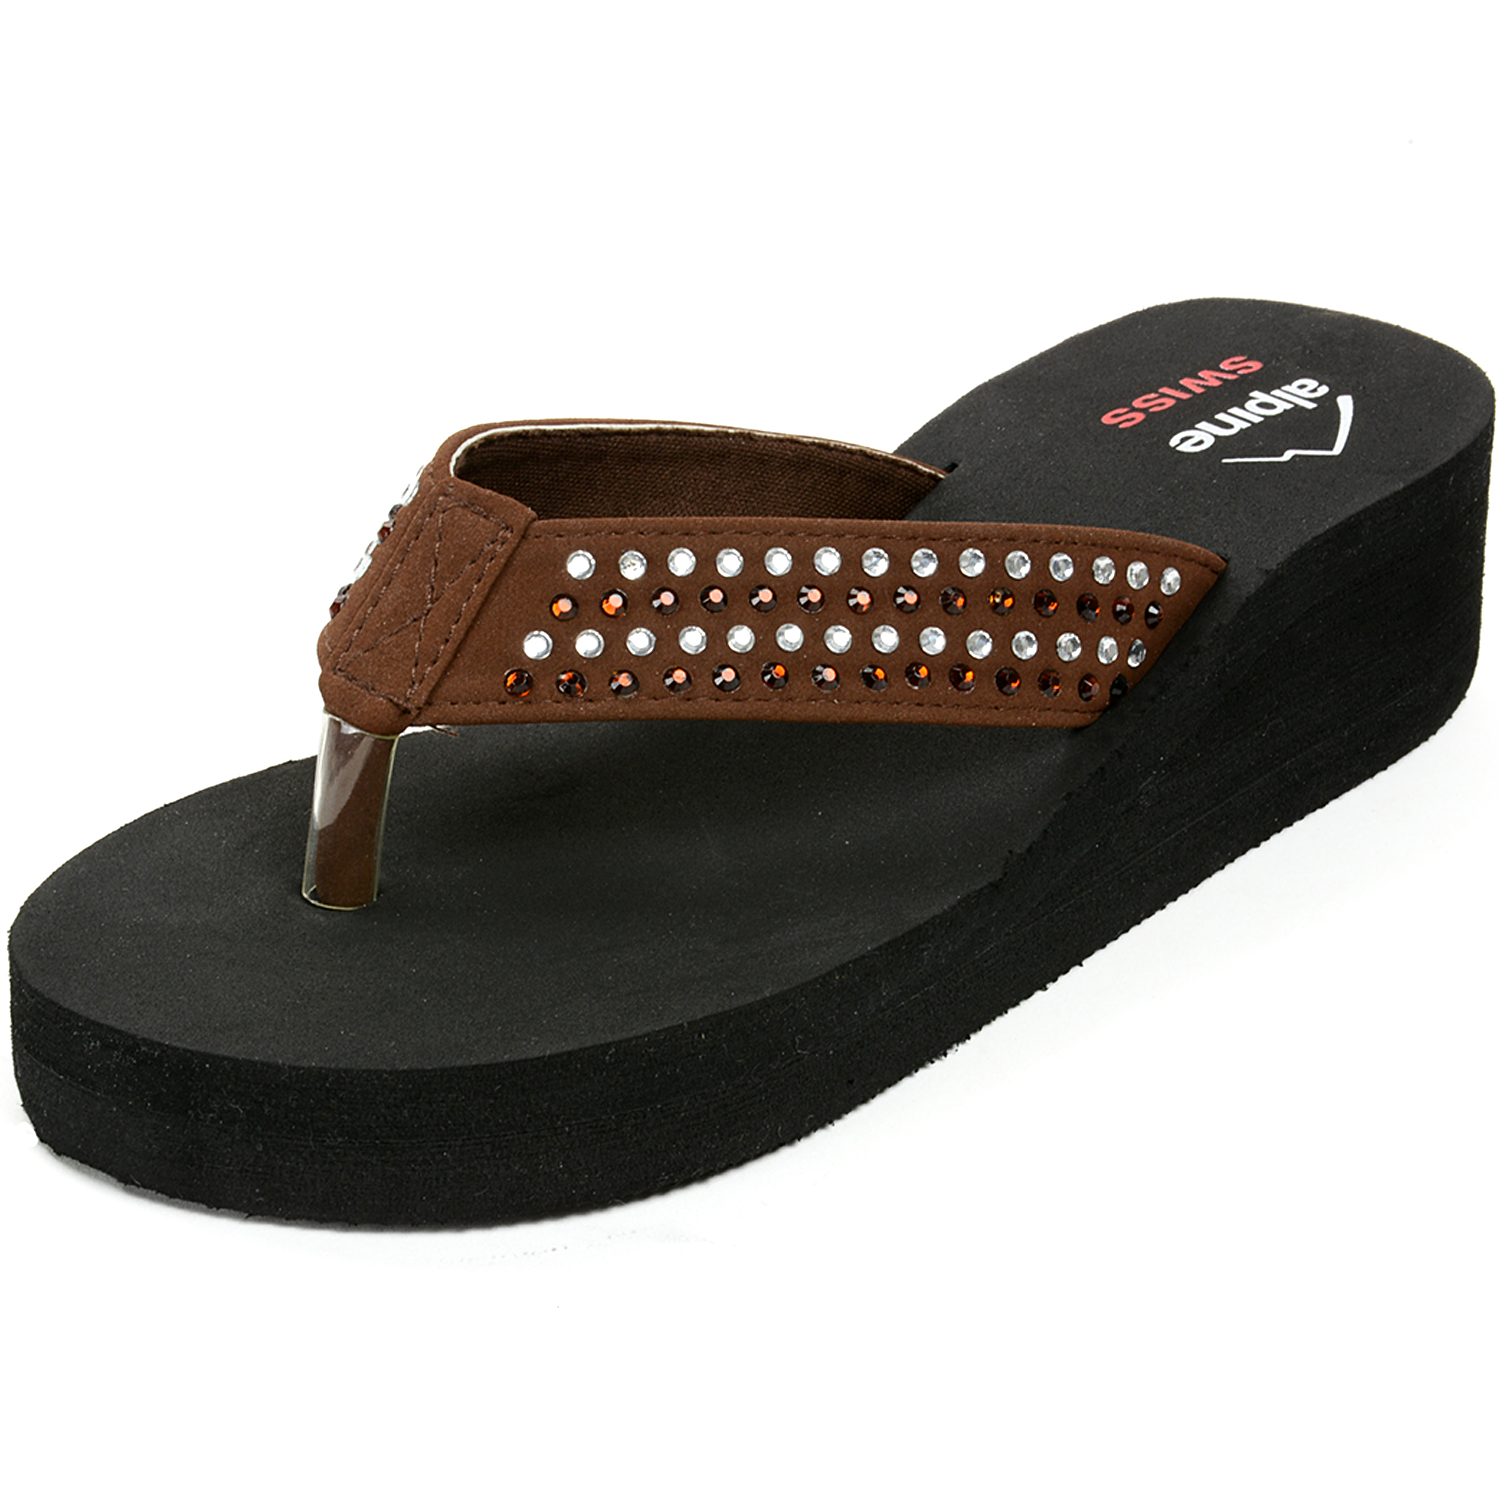 Free shipping BOTH ways on girls wedge flip flops, from our vast selection of styles. Fast delivery, and 24/7/ real-person service with a smile. Click or call